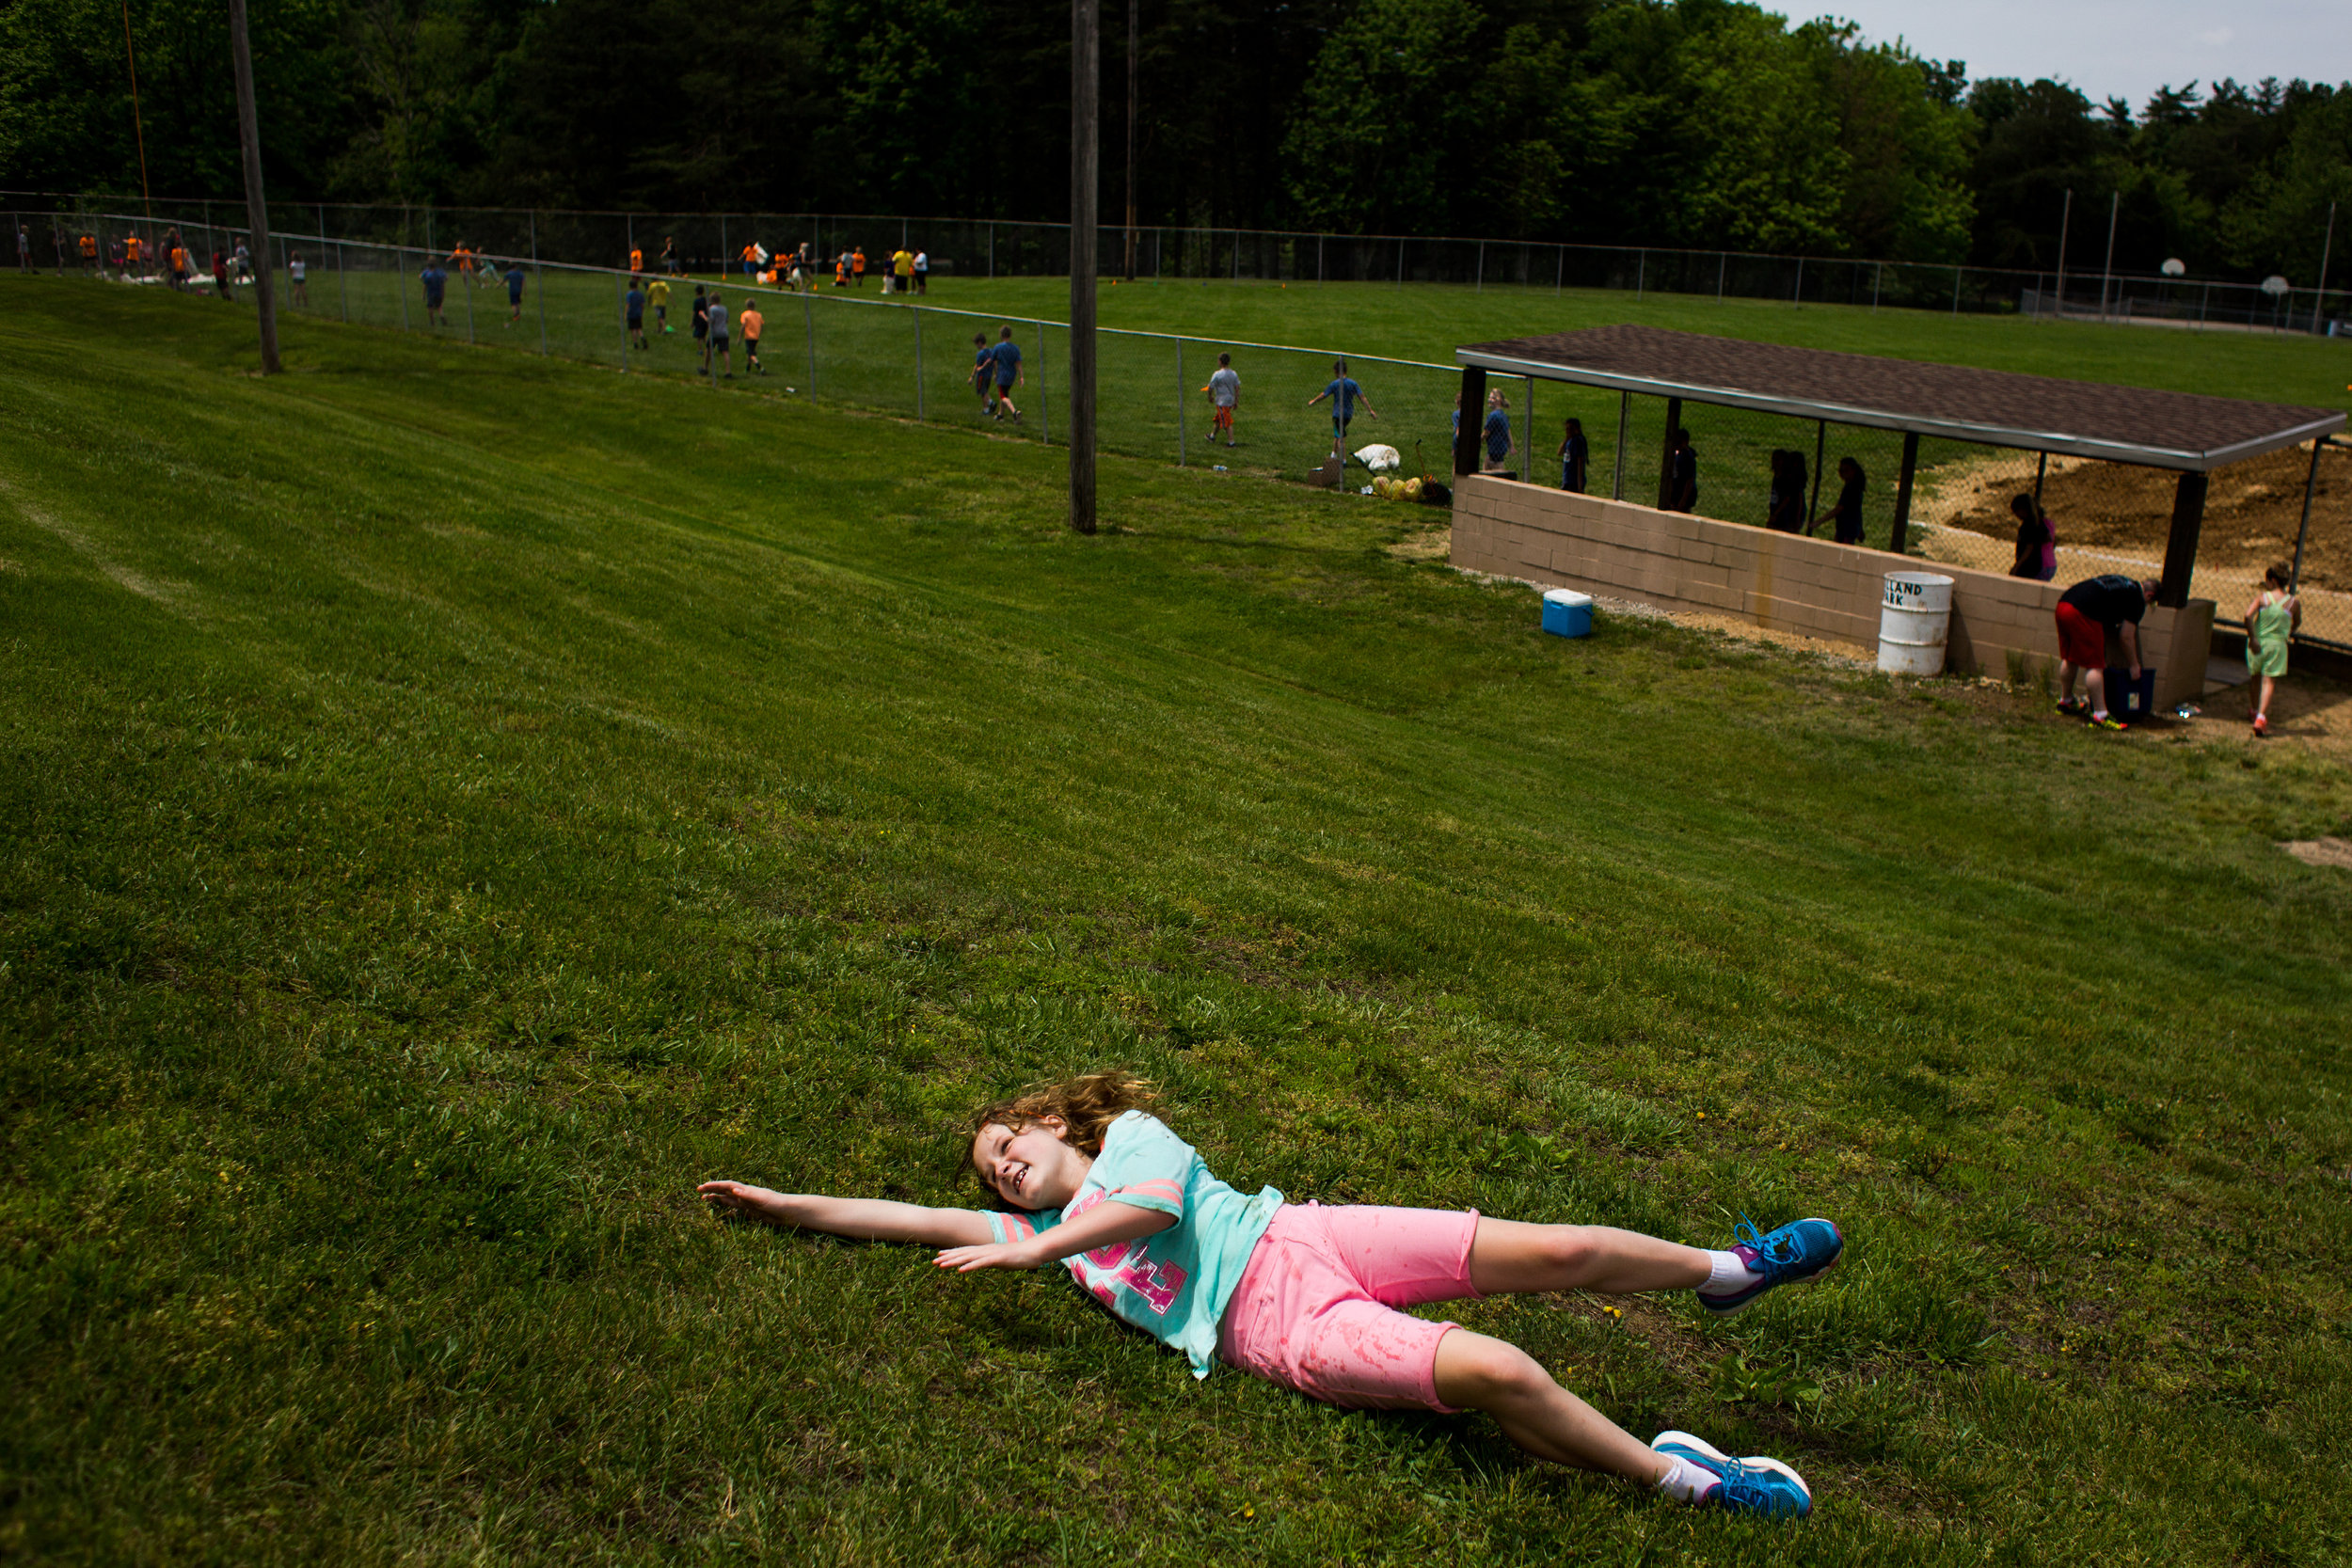 Holland Elementary School fourth-grader Jill Keusch rolled down the hill during the school's field day Wednesday at Holland Park.